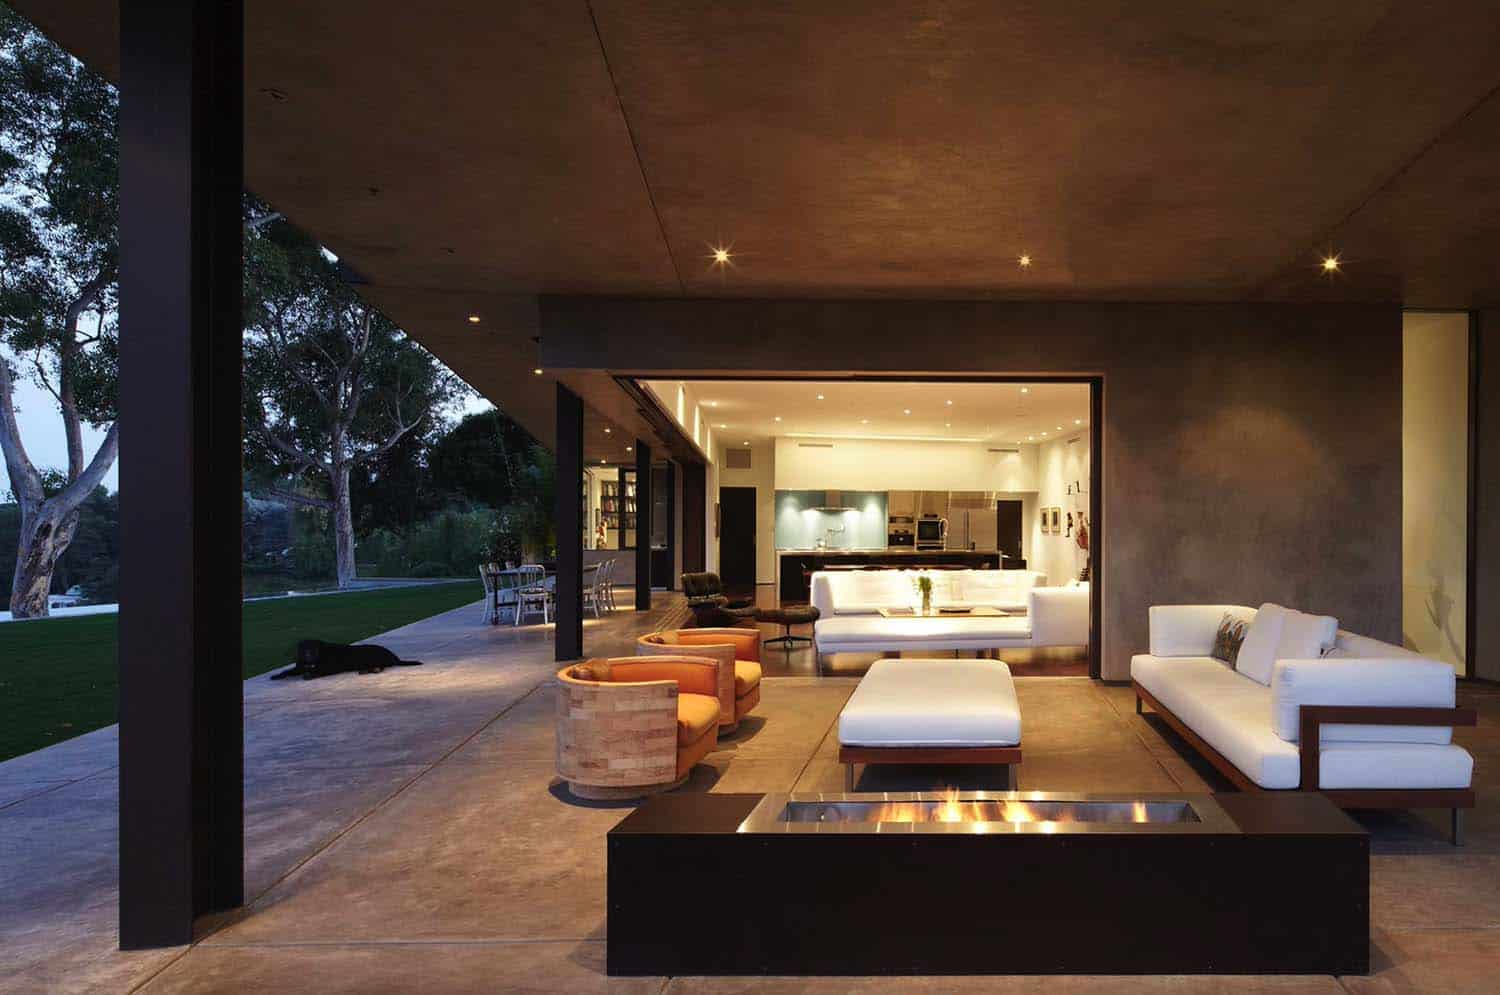 modern-dream-house-exterior-patio